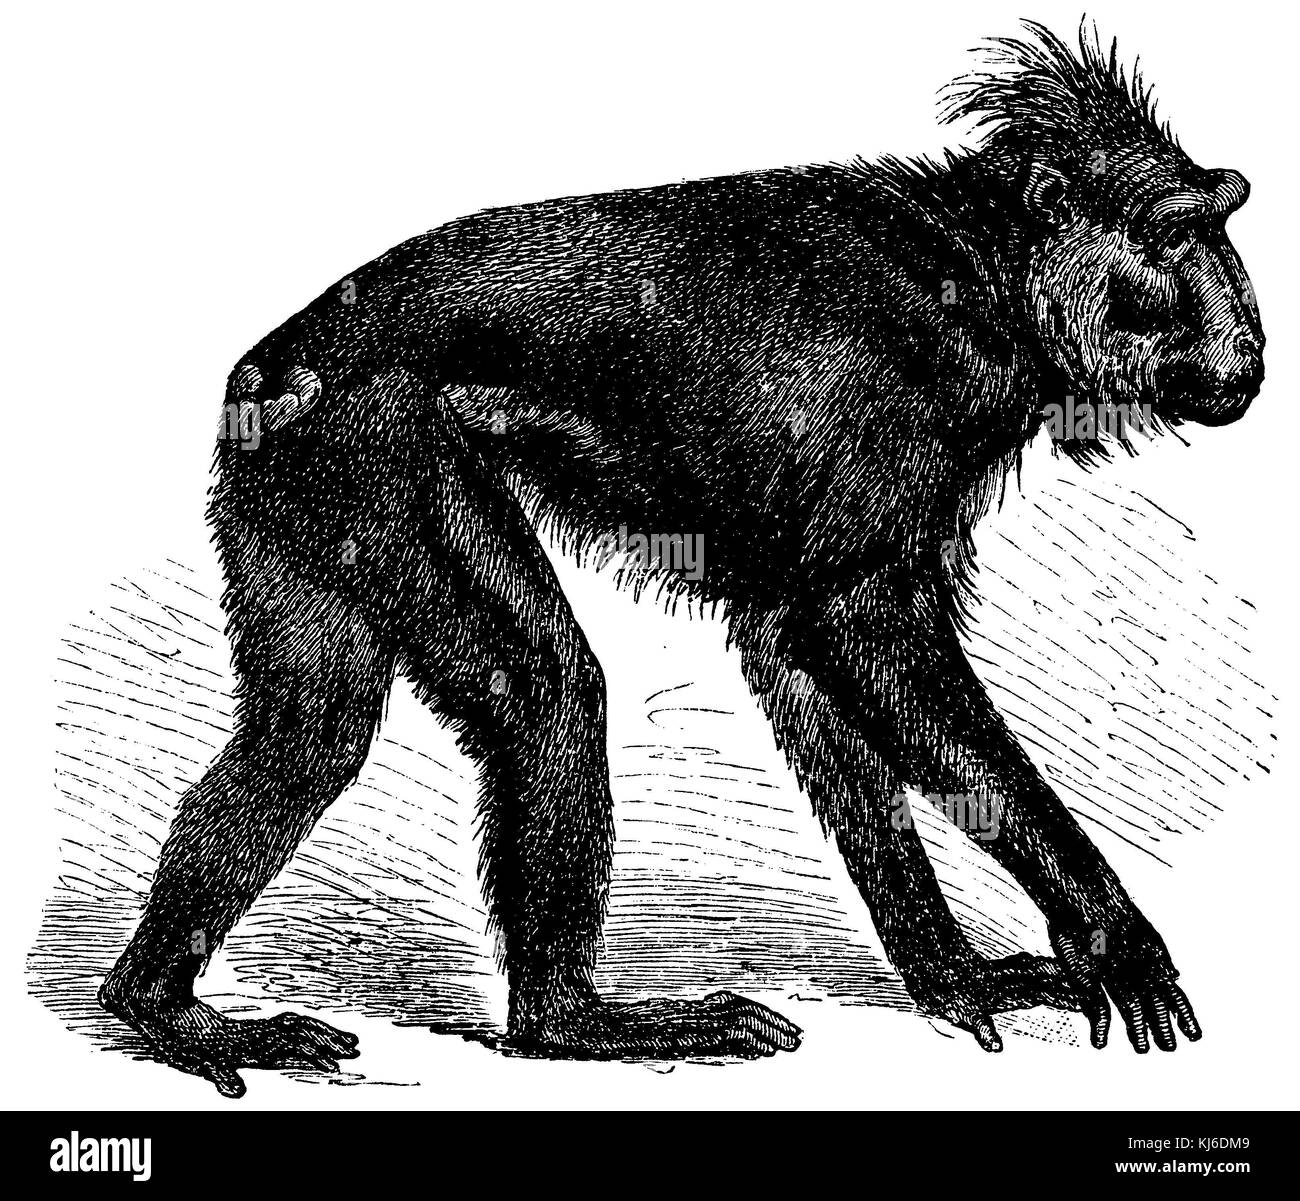 Celebes crested macaque, crested black macaque, Sulawesi crested macaque, or the black ape (Schopfaffe oder Schopfmakak - Stock Image